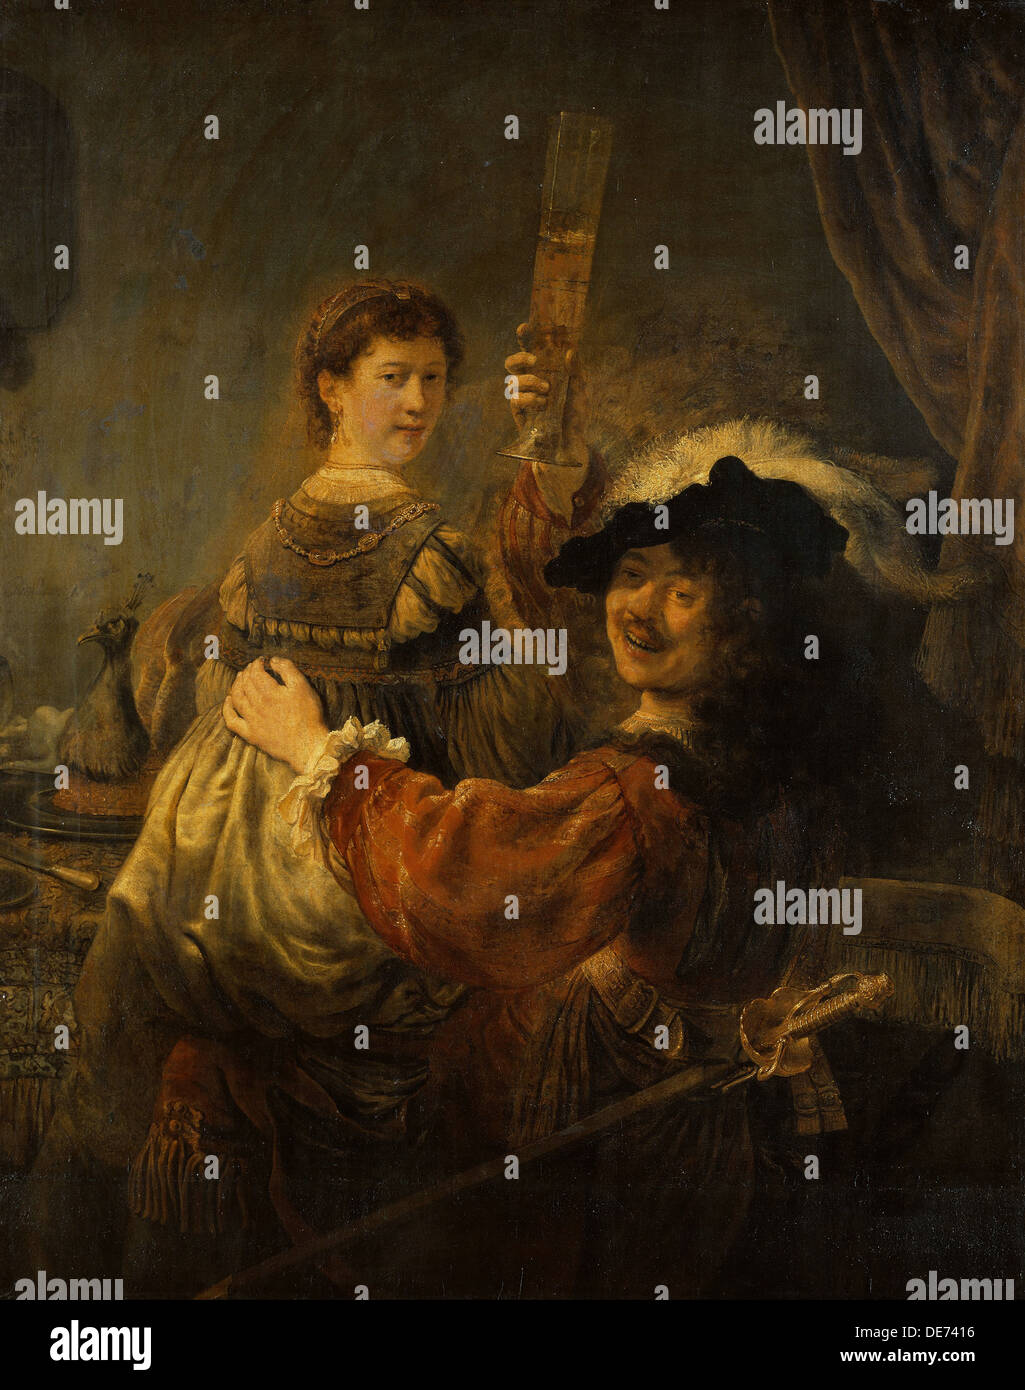 Rembrandt and Saskia in the parable of the Prodigal Son, c. 1635. Artist: Rembrandt van Rhijn (1606-1669) - Stock Image